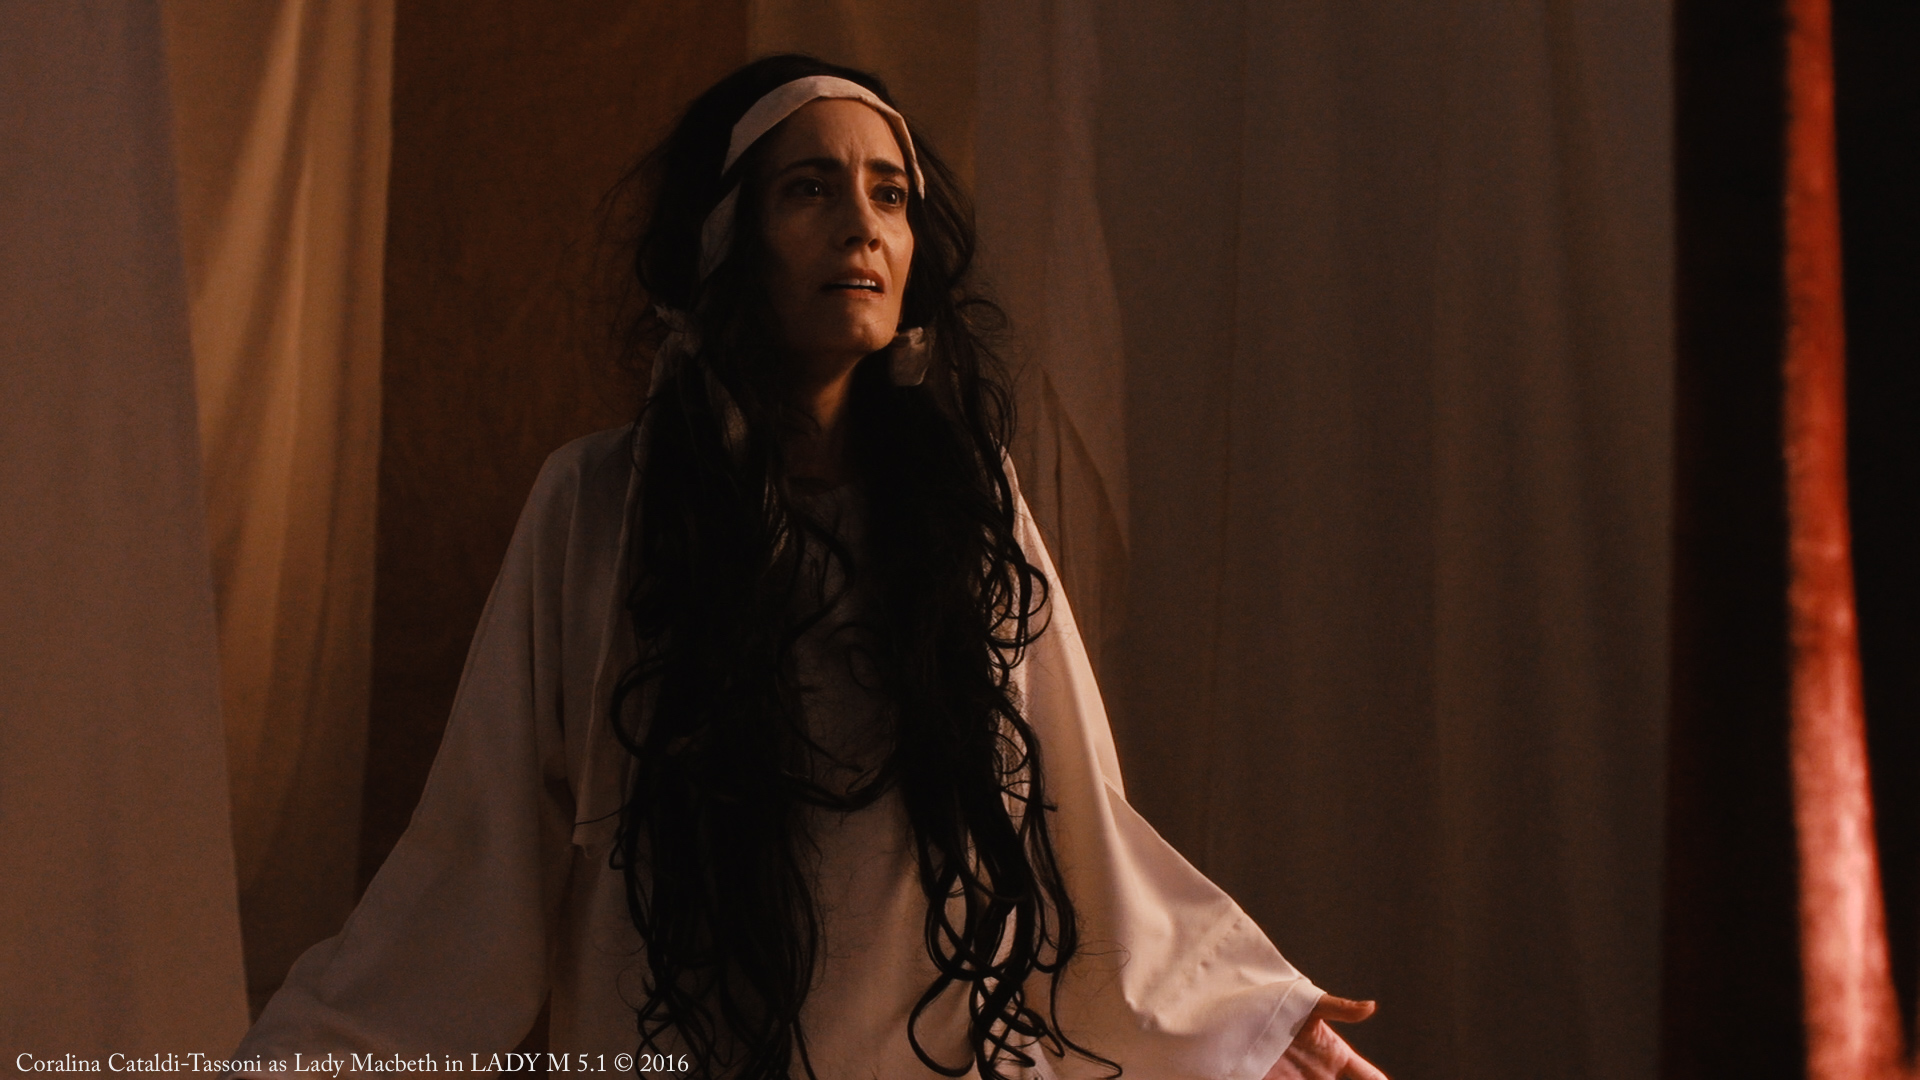 b. Coralina Cataldi-Tassoni as Lady Macbeth in Lady M 5.1 All rights reserved 32.jpg